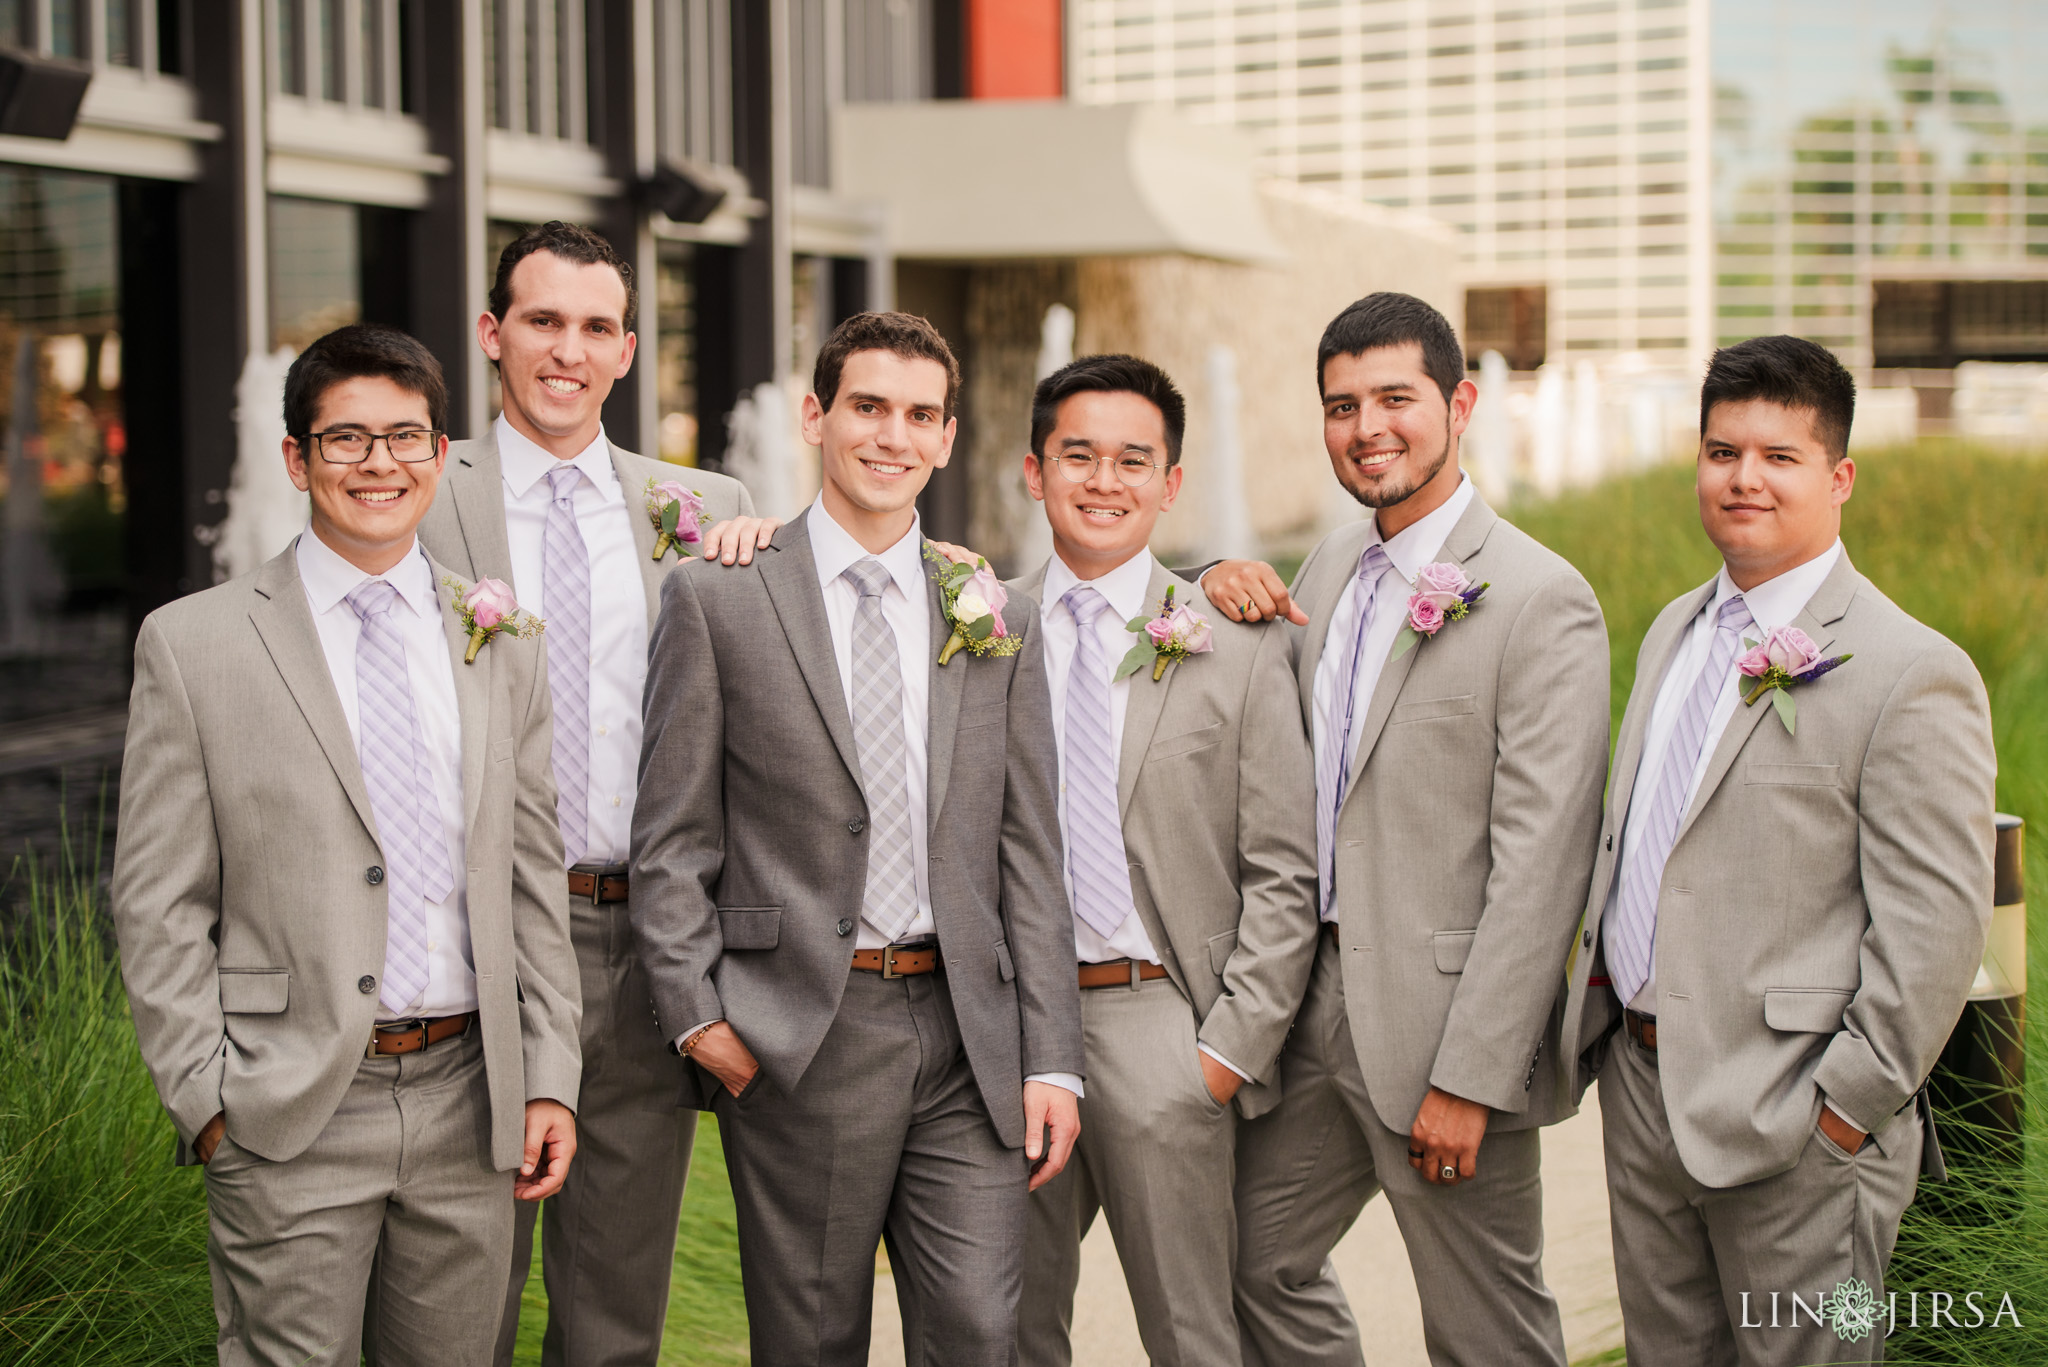 011 hyatt regency huntington beach groomsmen wedding photography